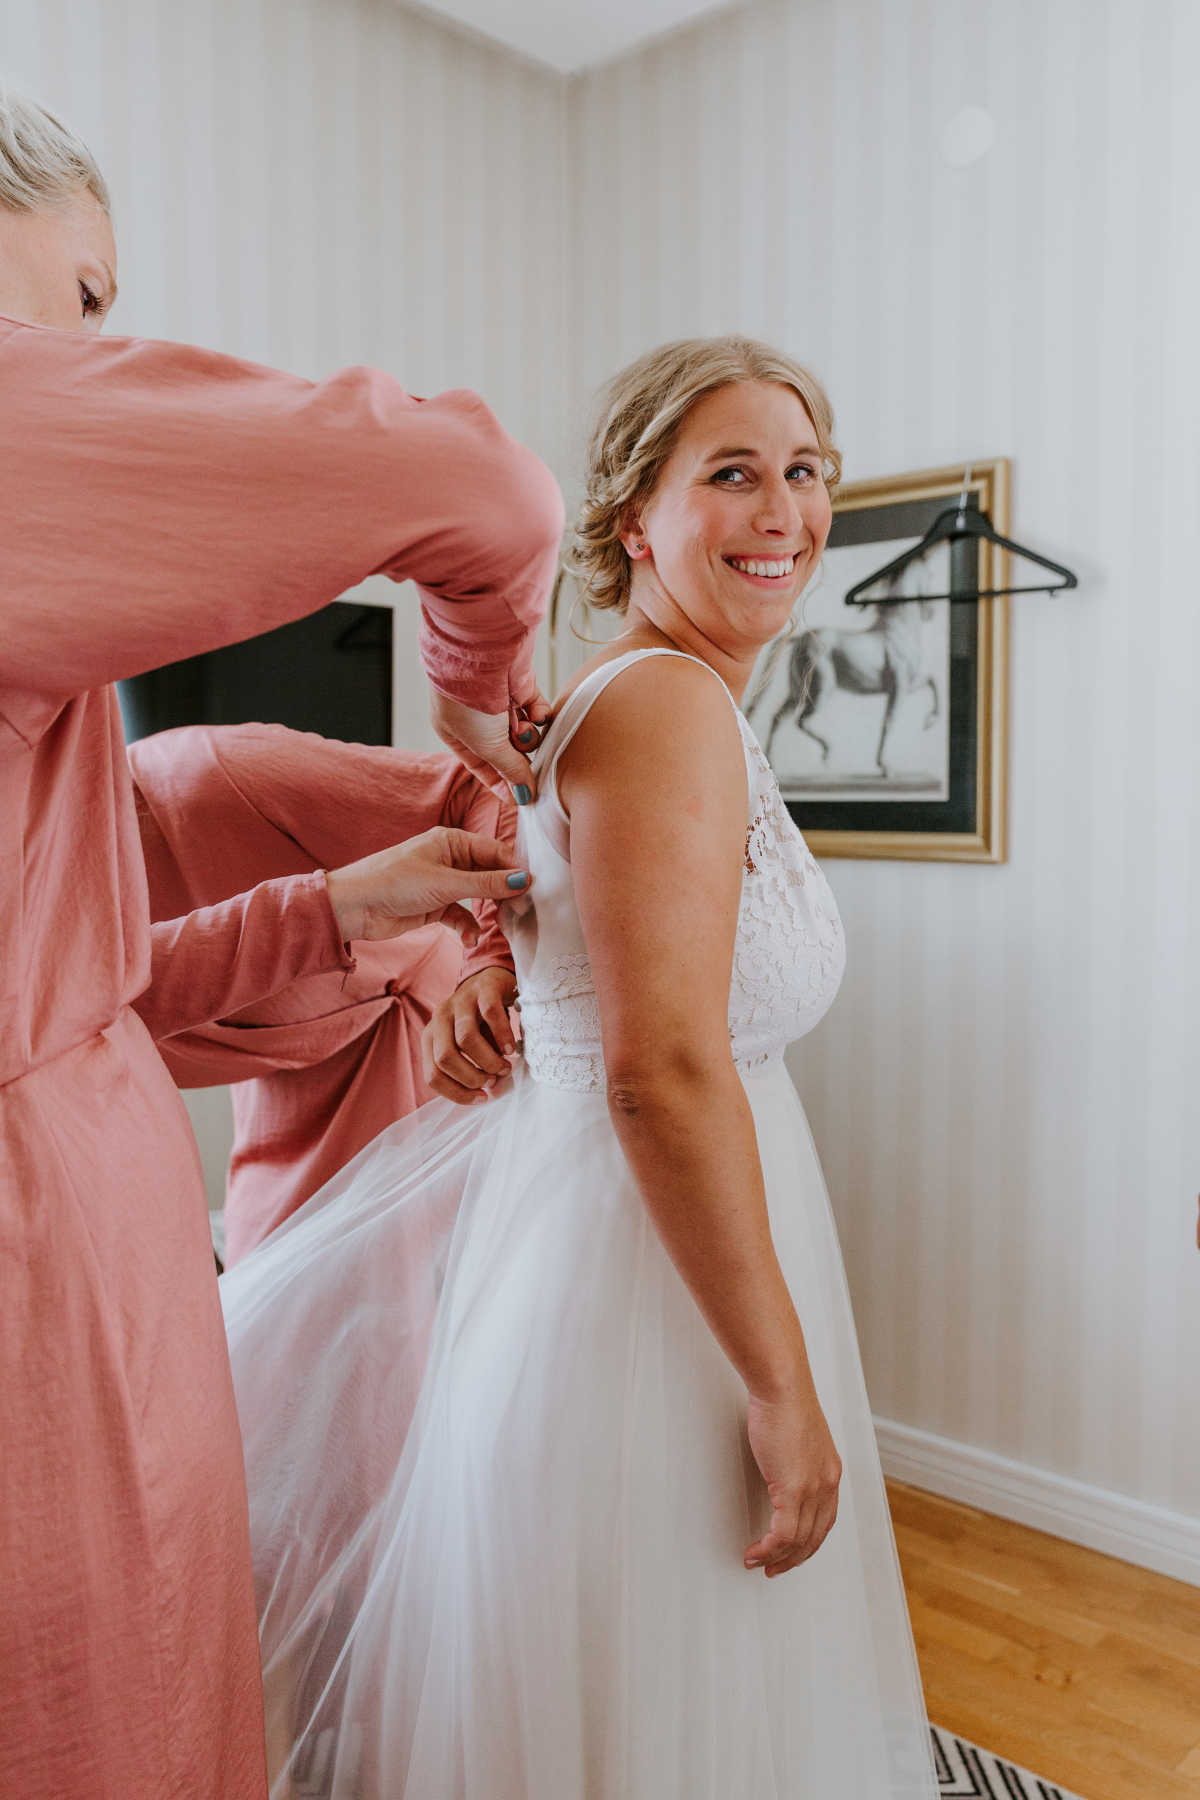 Julia, the bride, looks into the camera and smiles while the bridesmaids adjust her dress